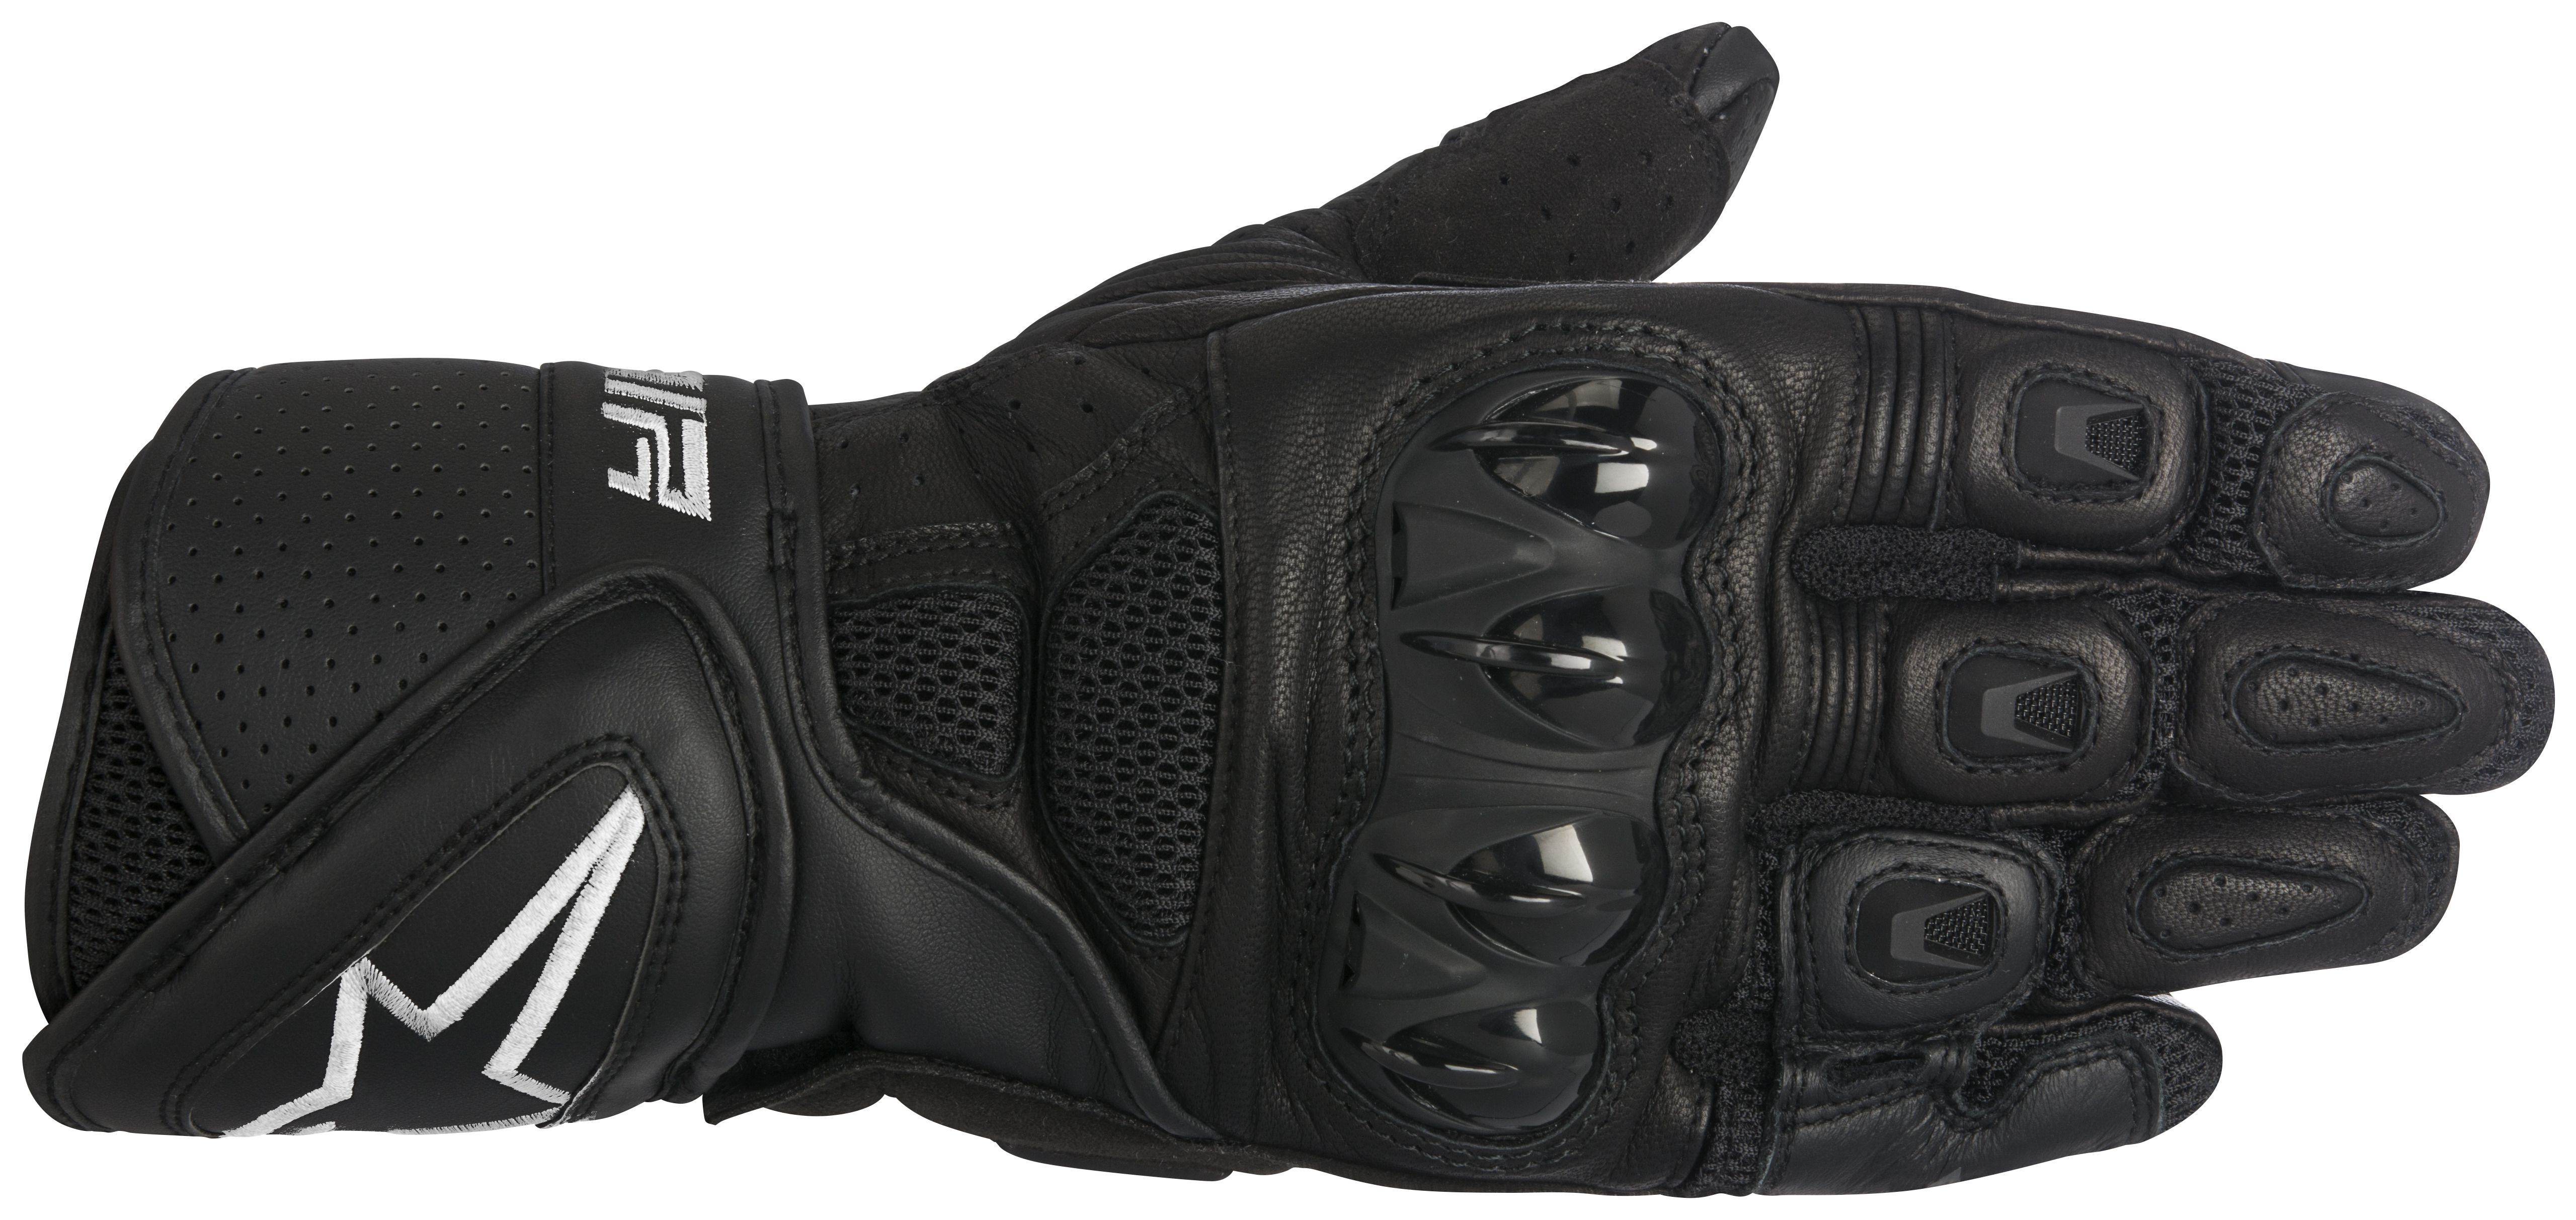 Motorcycle gloves to prevent numbness - Motorcycle Gloves To Prevent Numbness 24